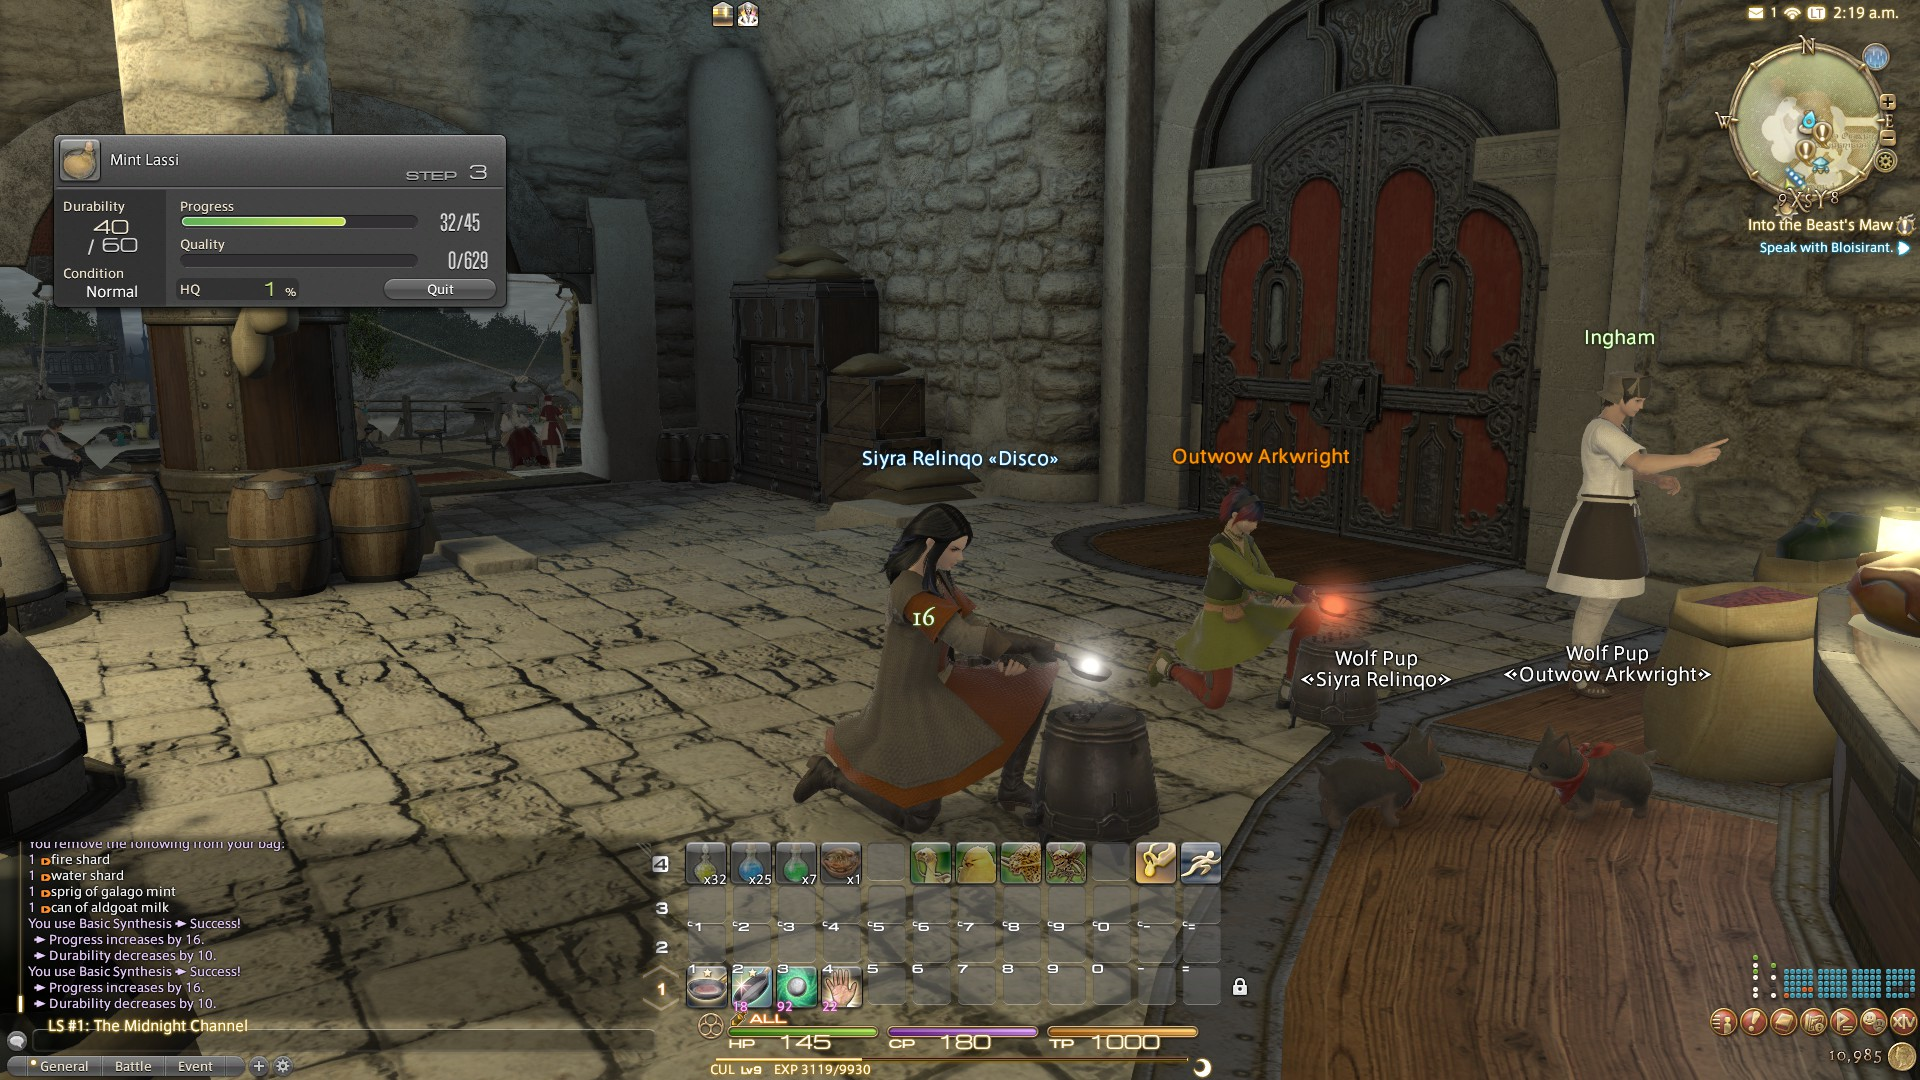 10 Things I Learned from Playing Final Fantasy XIV - The